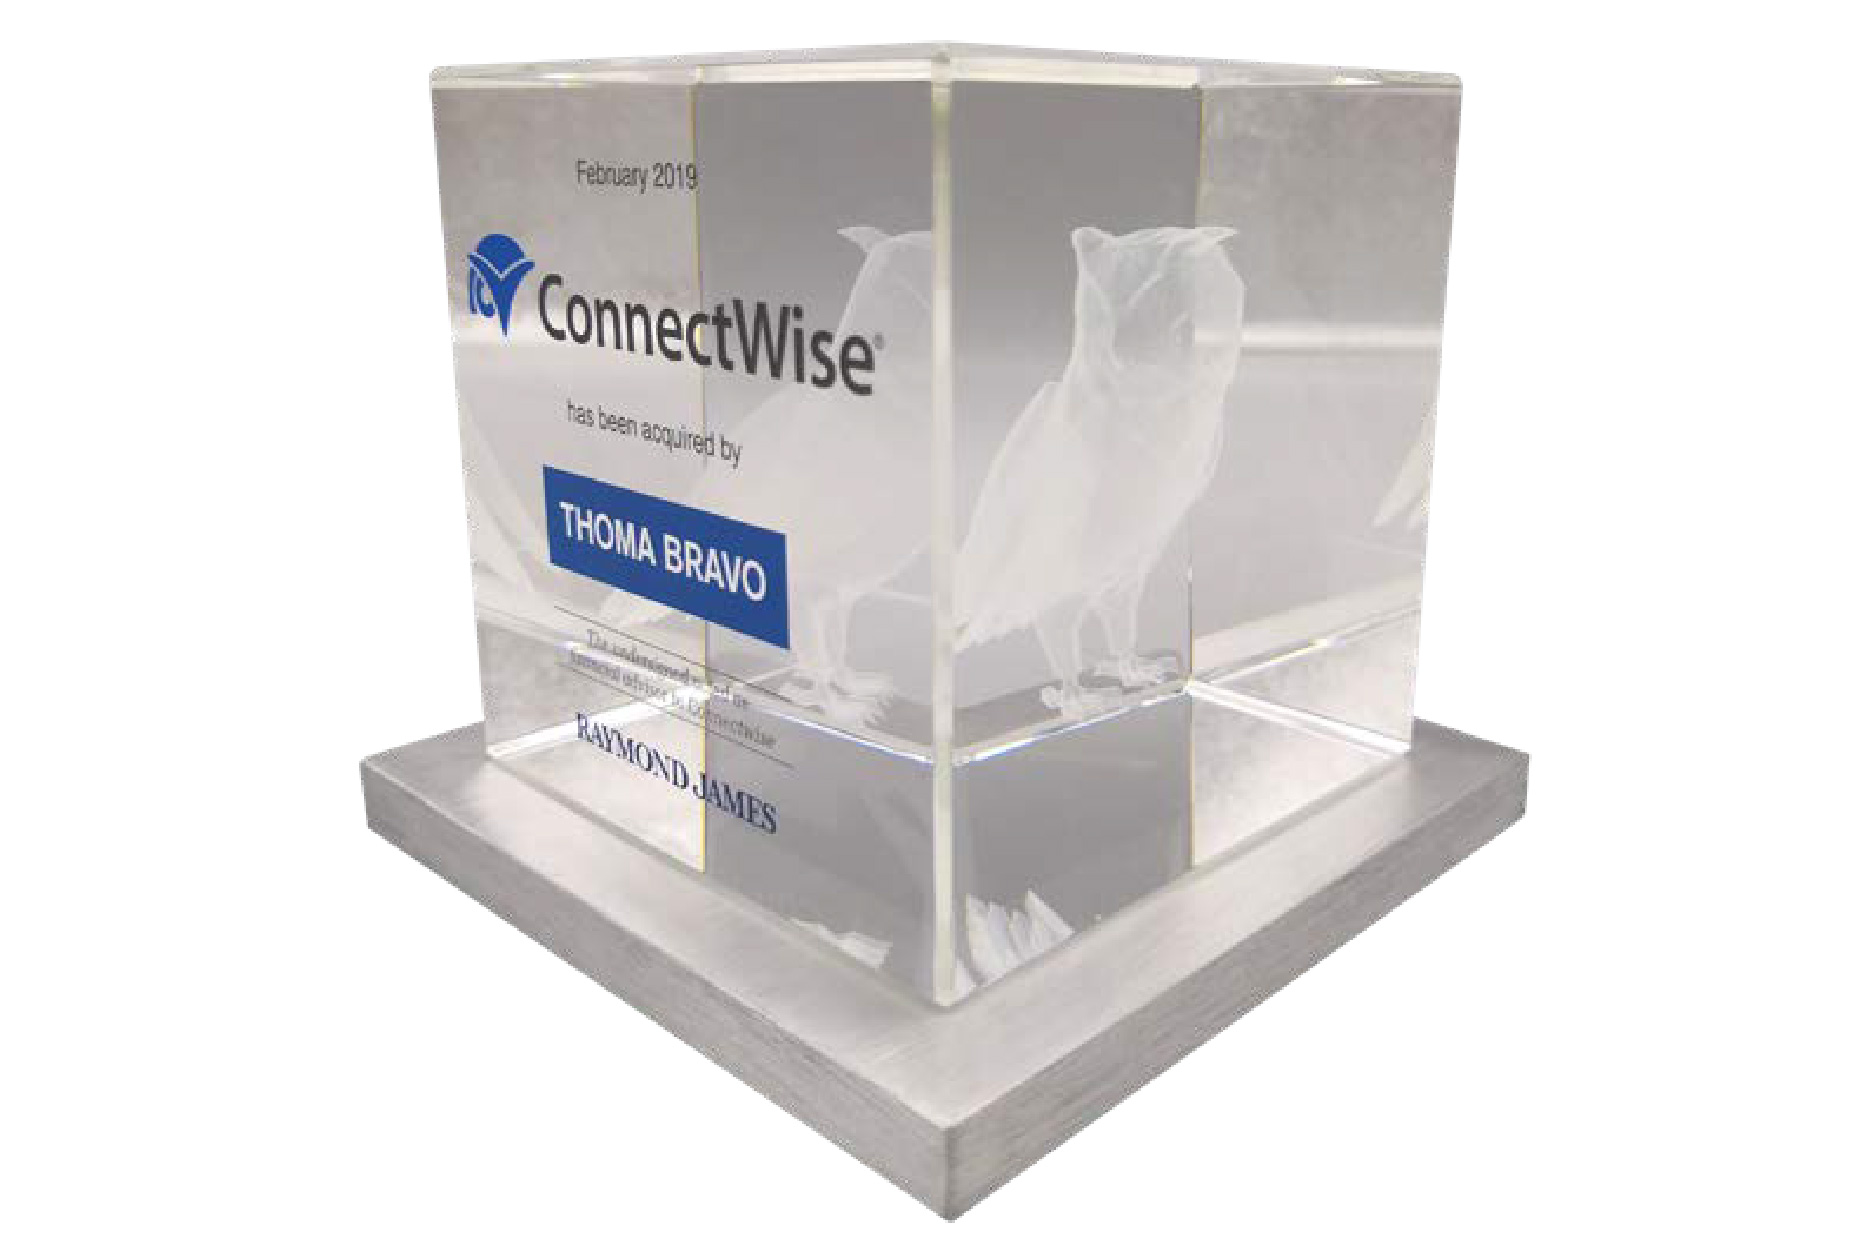 Crystal cube deal toy with a 3D etched owl, logos and detailed tombstone text.